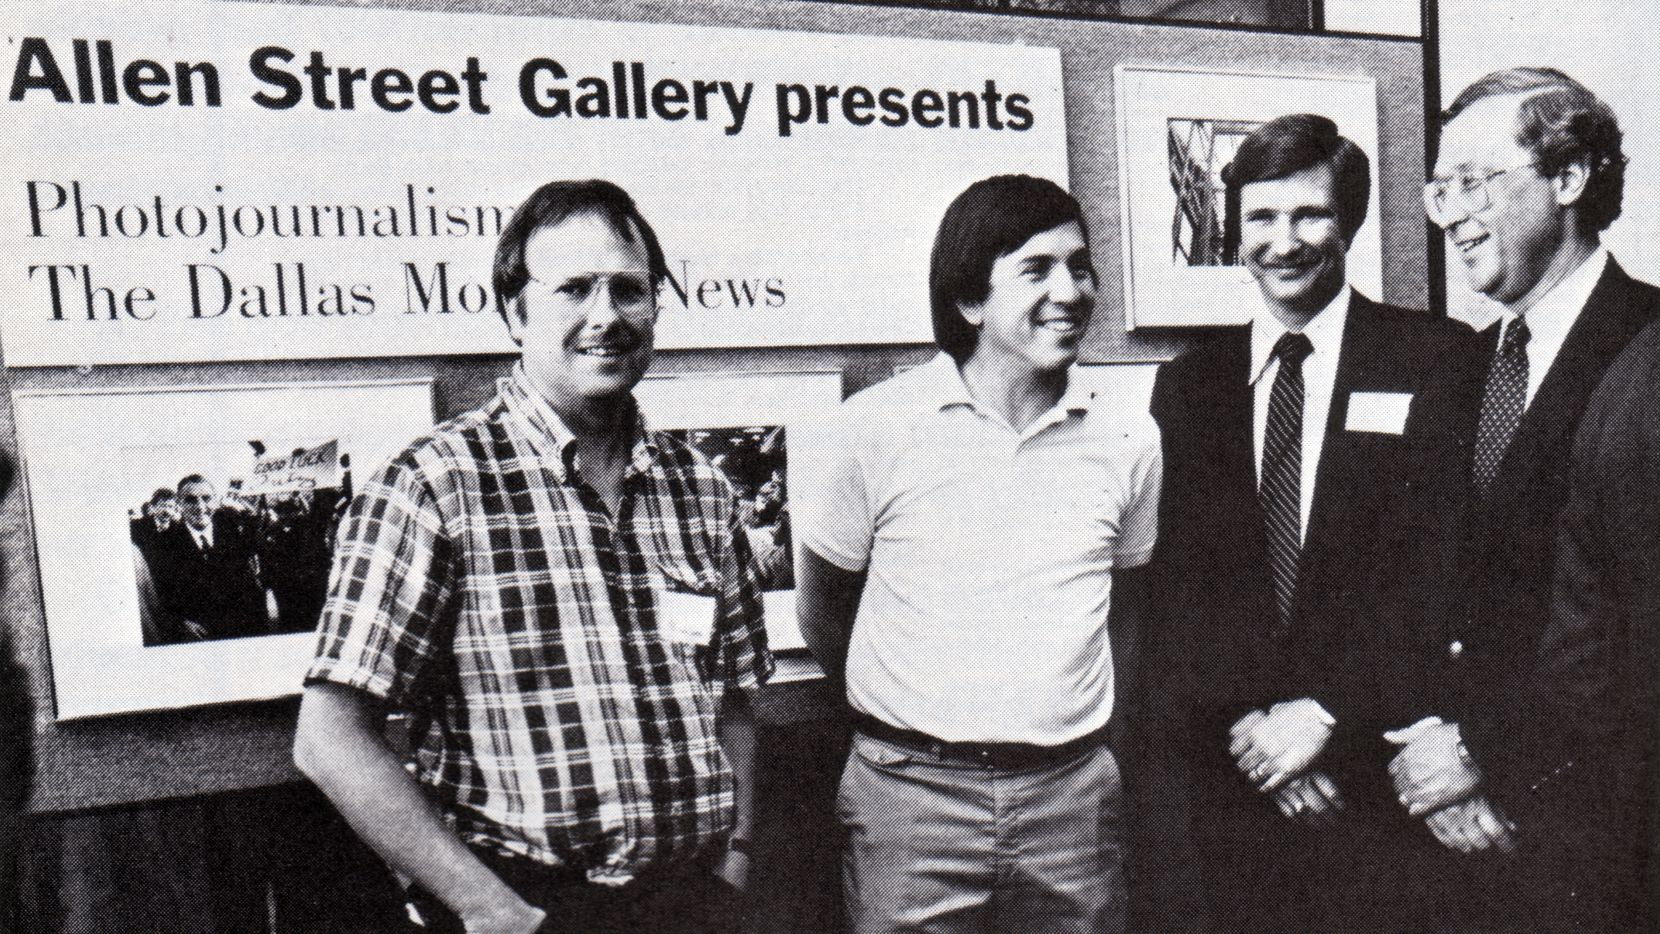 In 1984, Dallas Morning News photographers (from left) Randy Eli Grothe  and David Woo talk with executive Editor Ralph Langer (far right) about their photos at a preview of an exhibition. The man who's second from right was not identified.